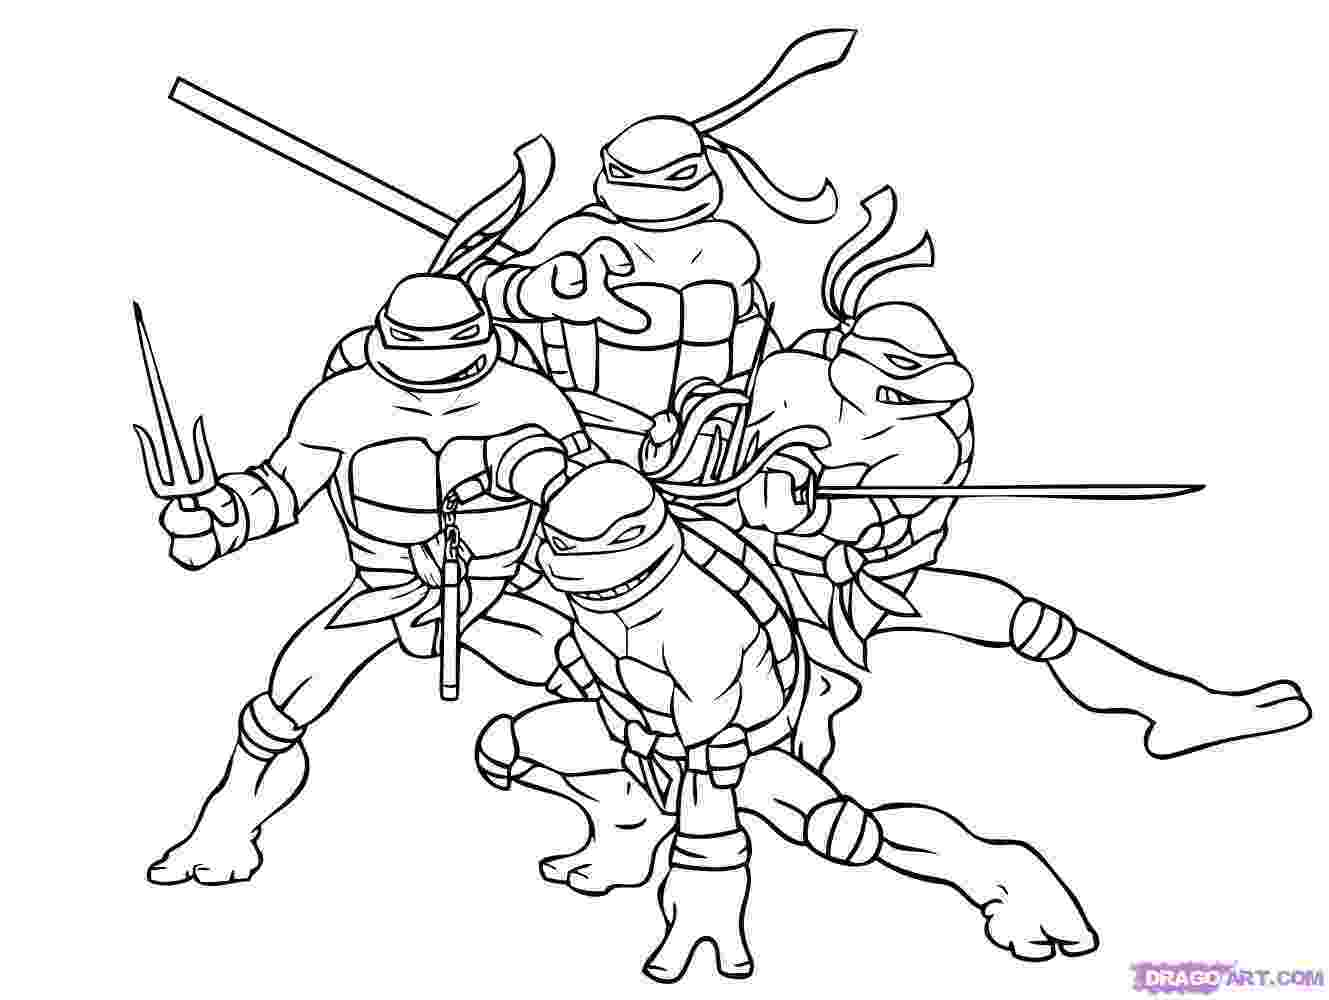 ninja turtles color teenage mutant ninja turtles coloring pages best color ninja turtles